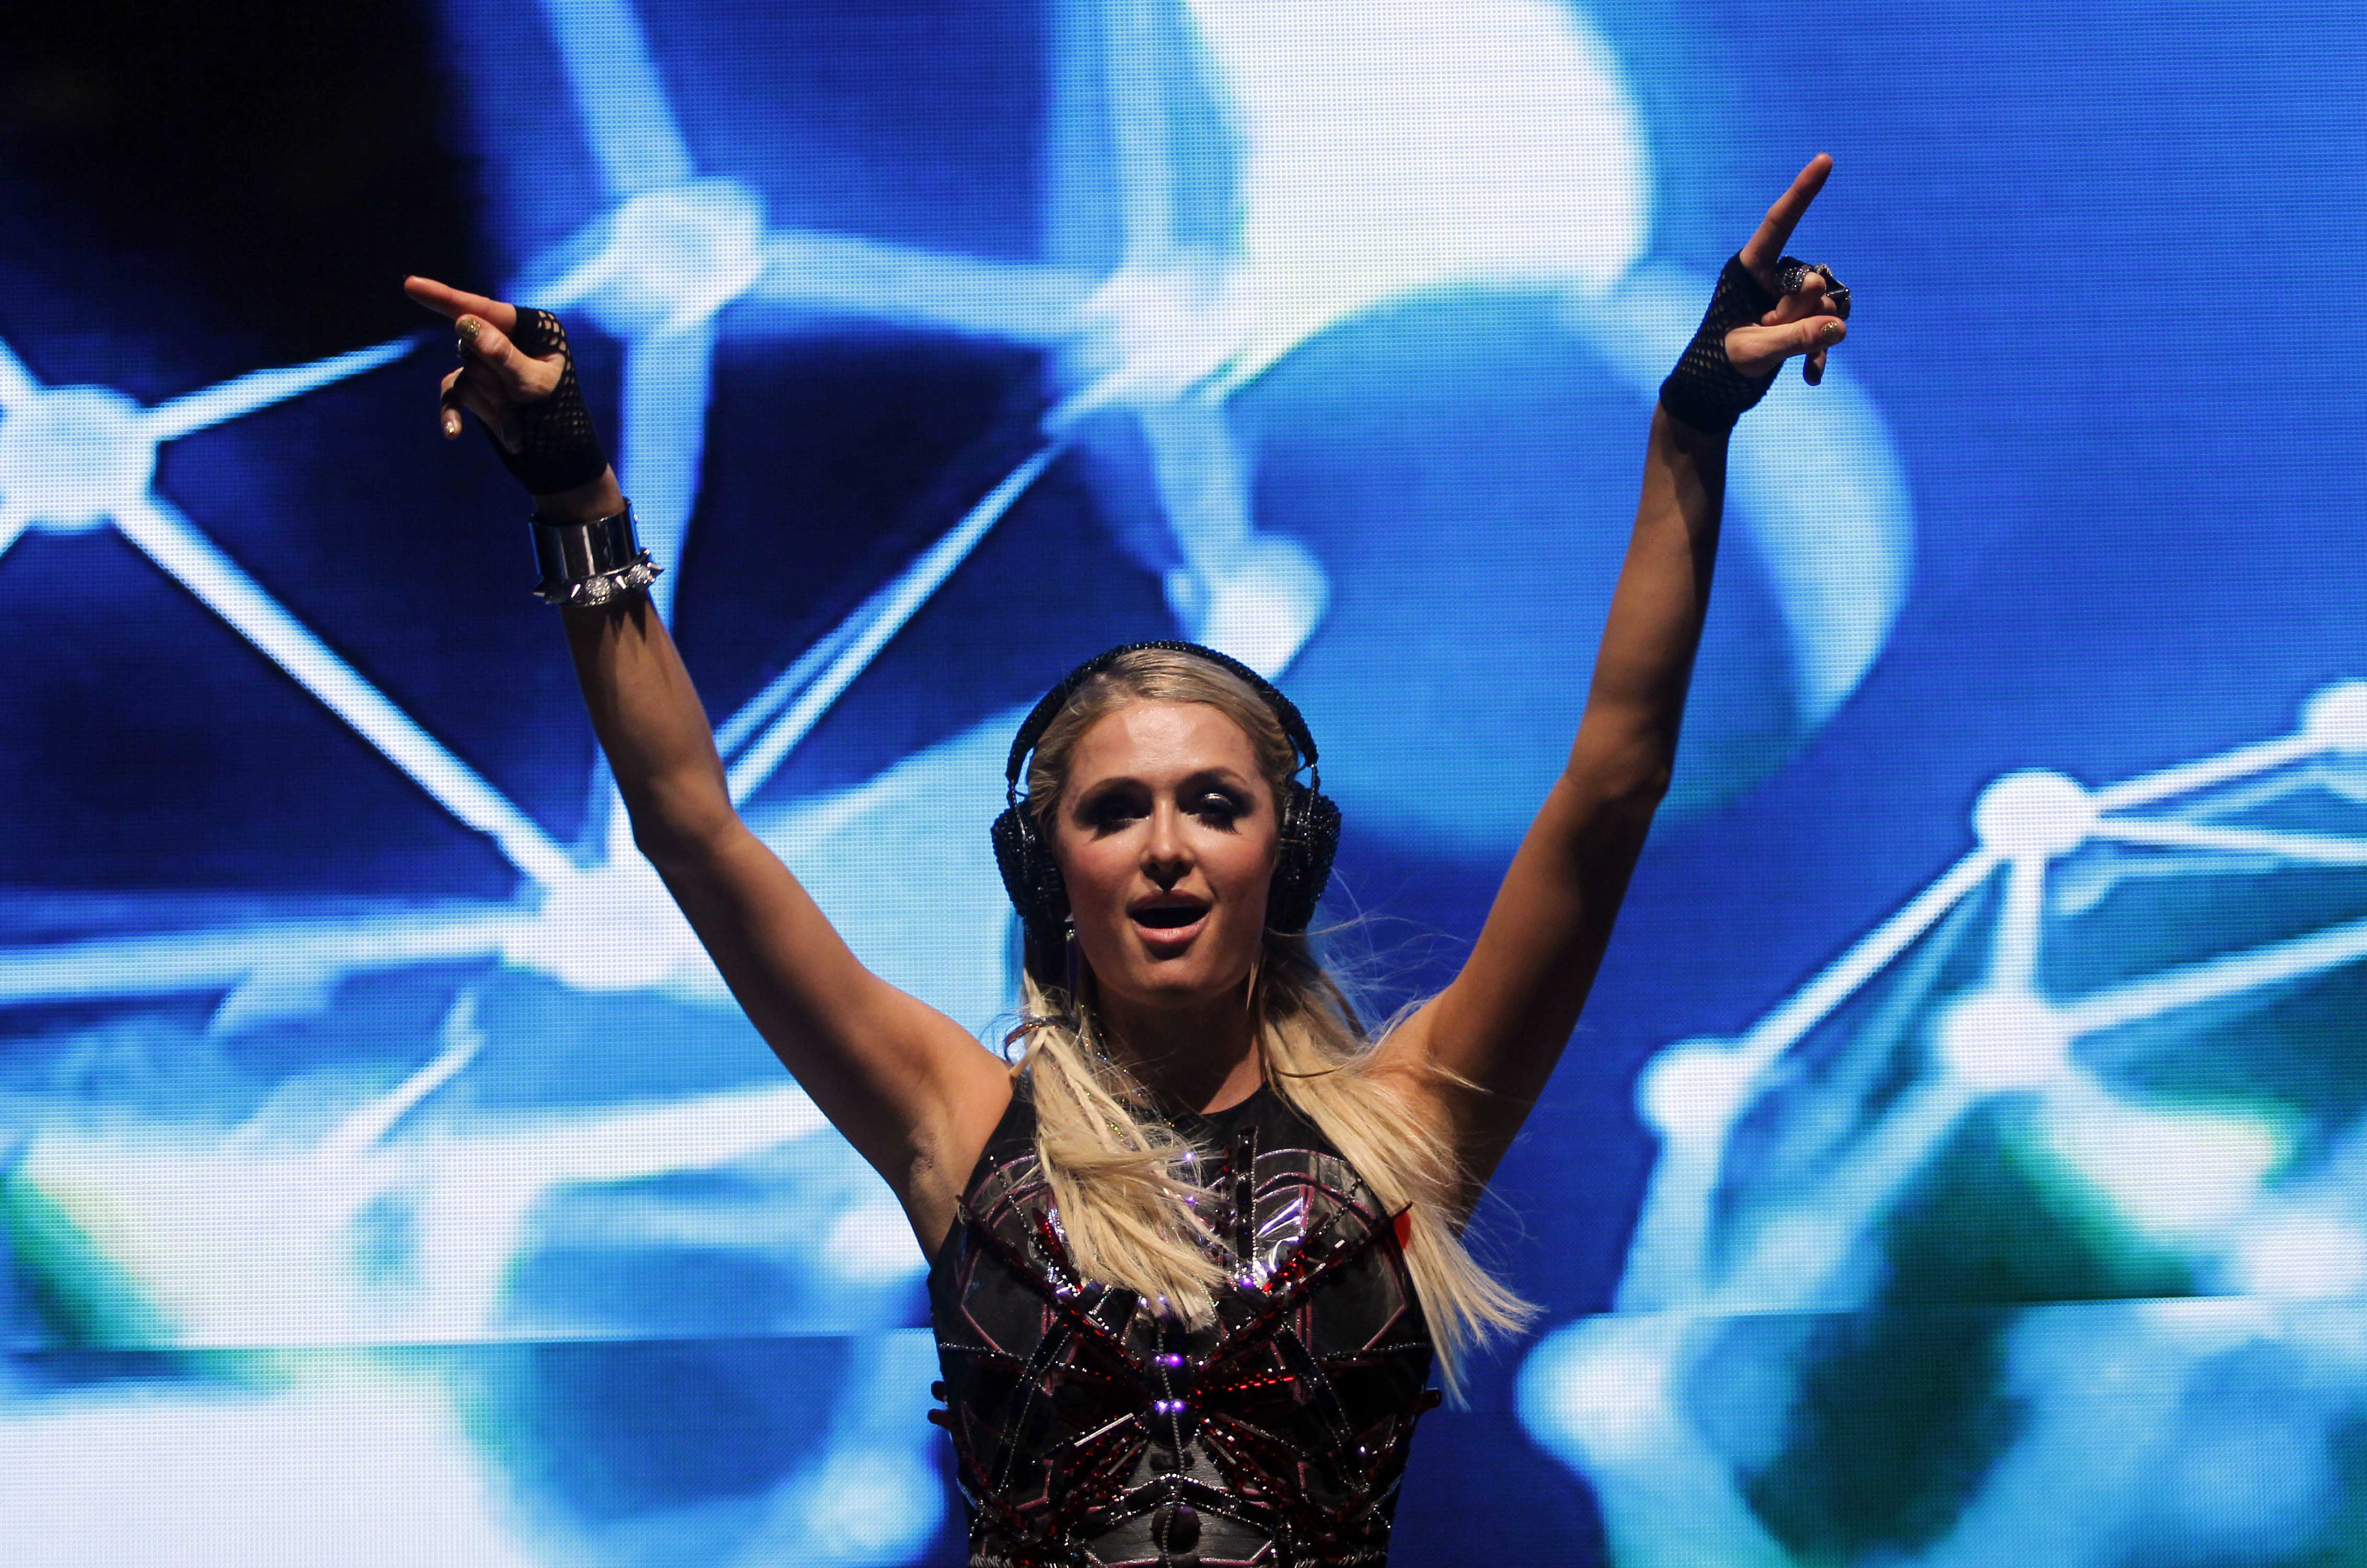 Paris Hilton had thousands of people jumping and screaming at Candolim Beach in Goa